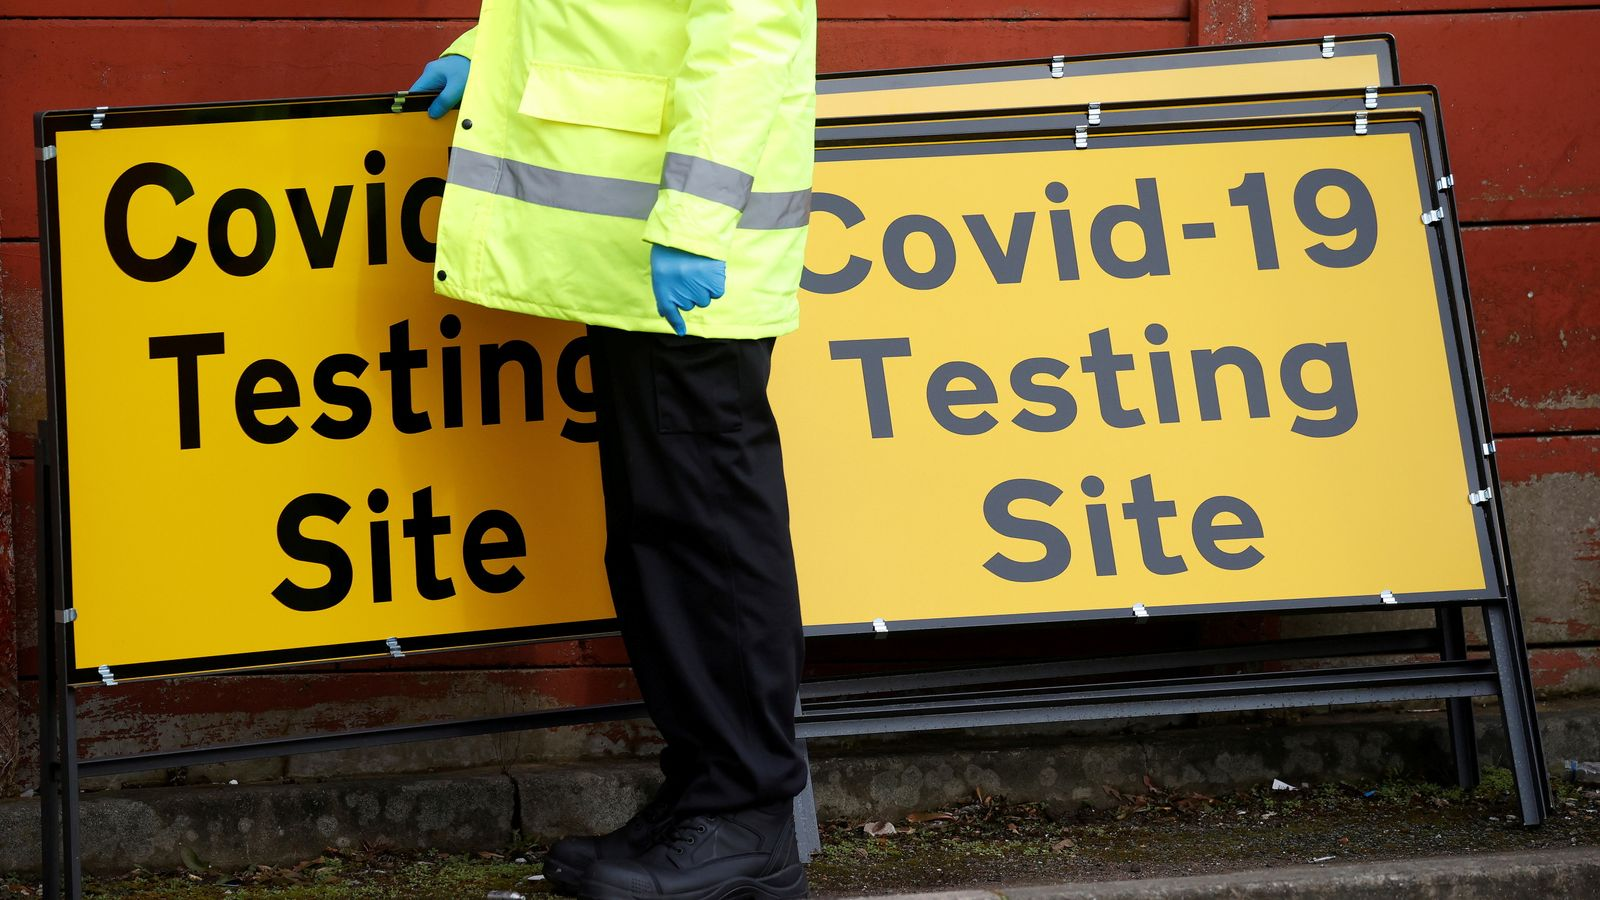 UK reports another 29,520 COVID cases and 93 deaths, latest daily figures show